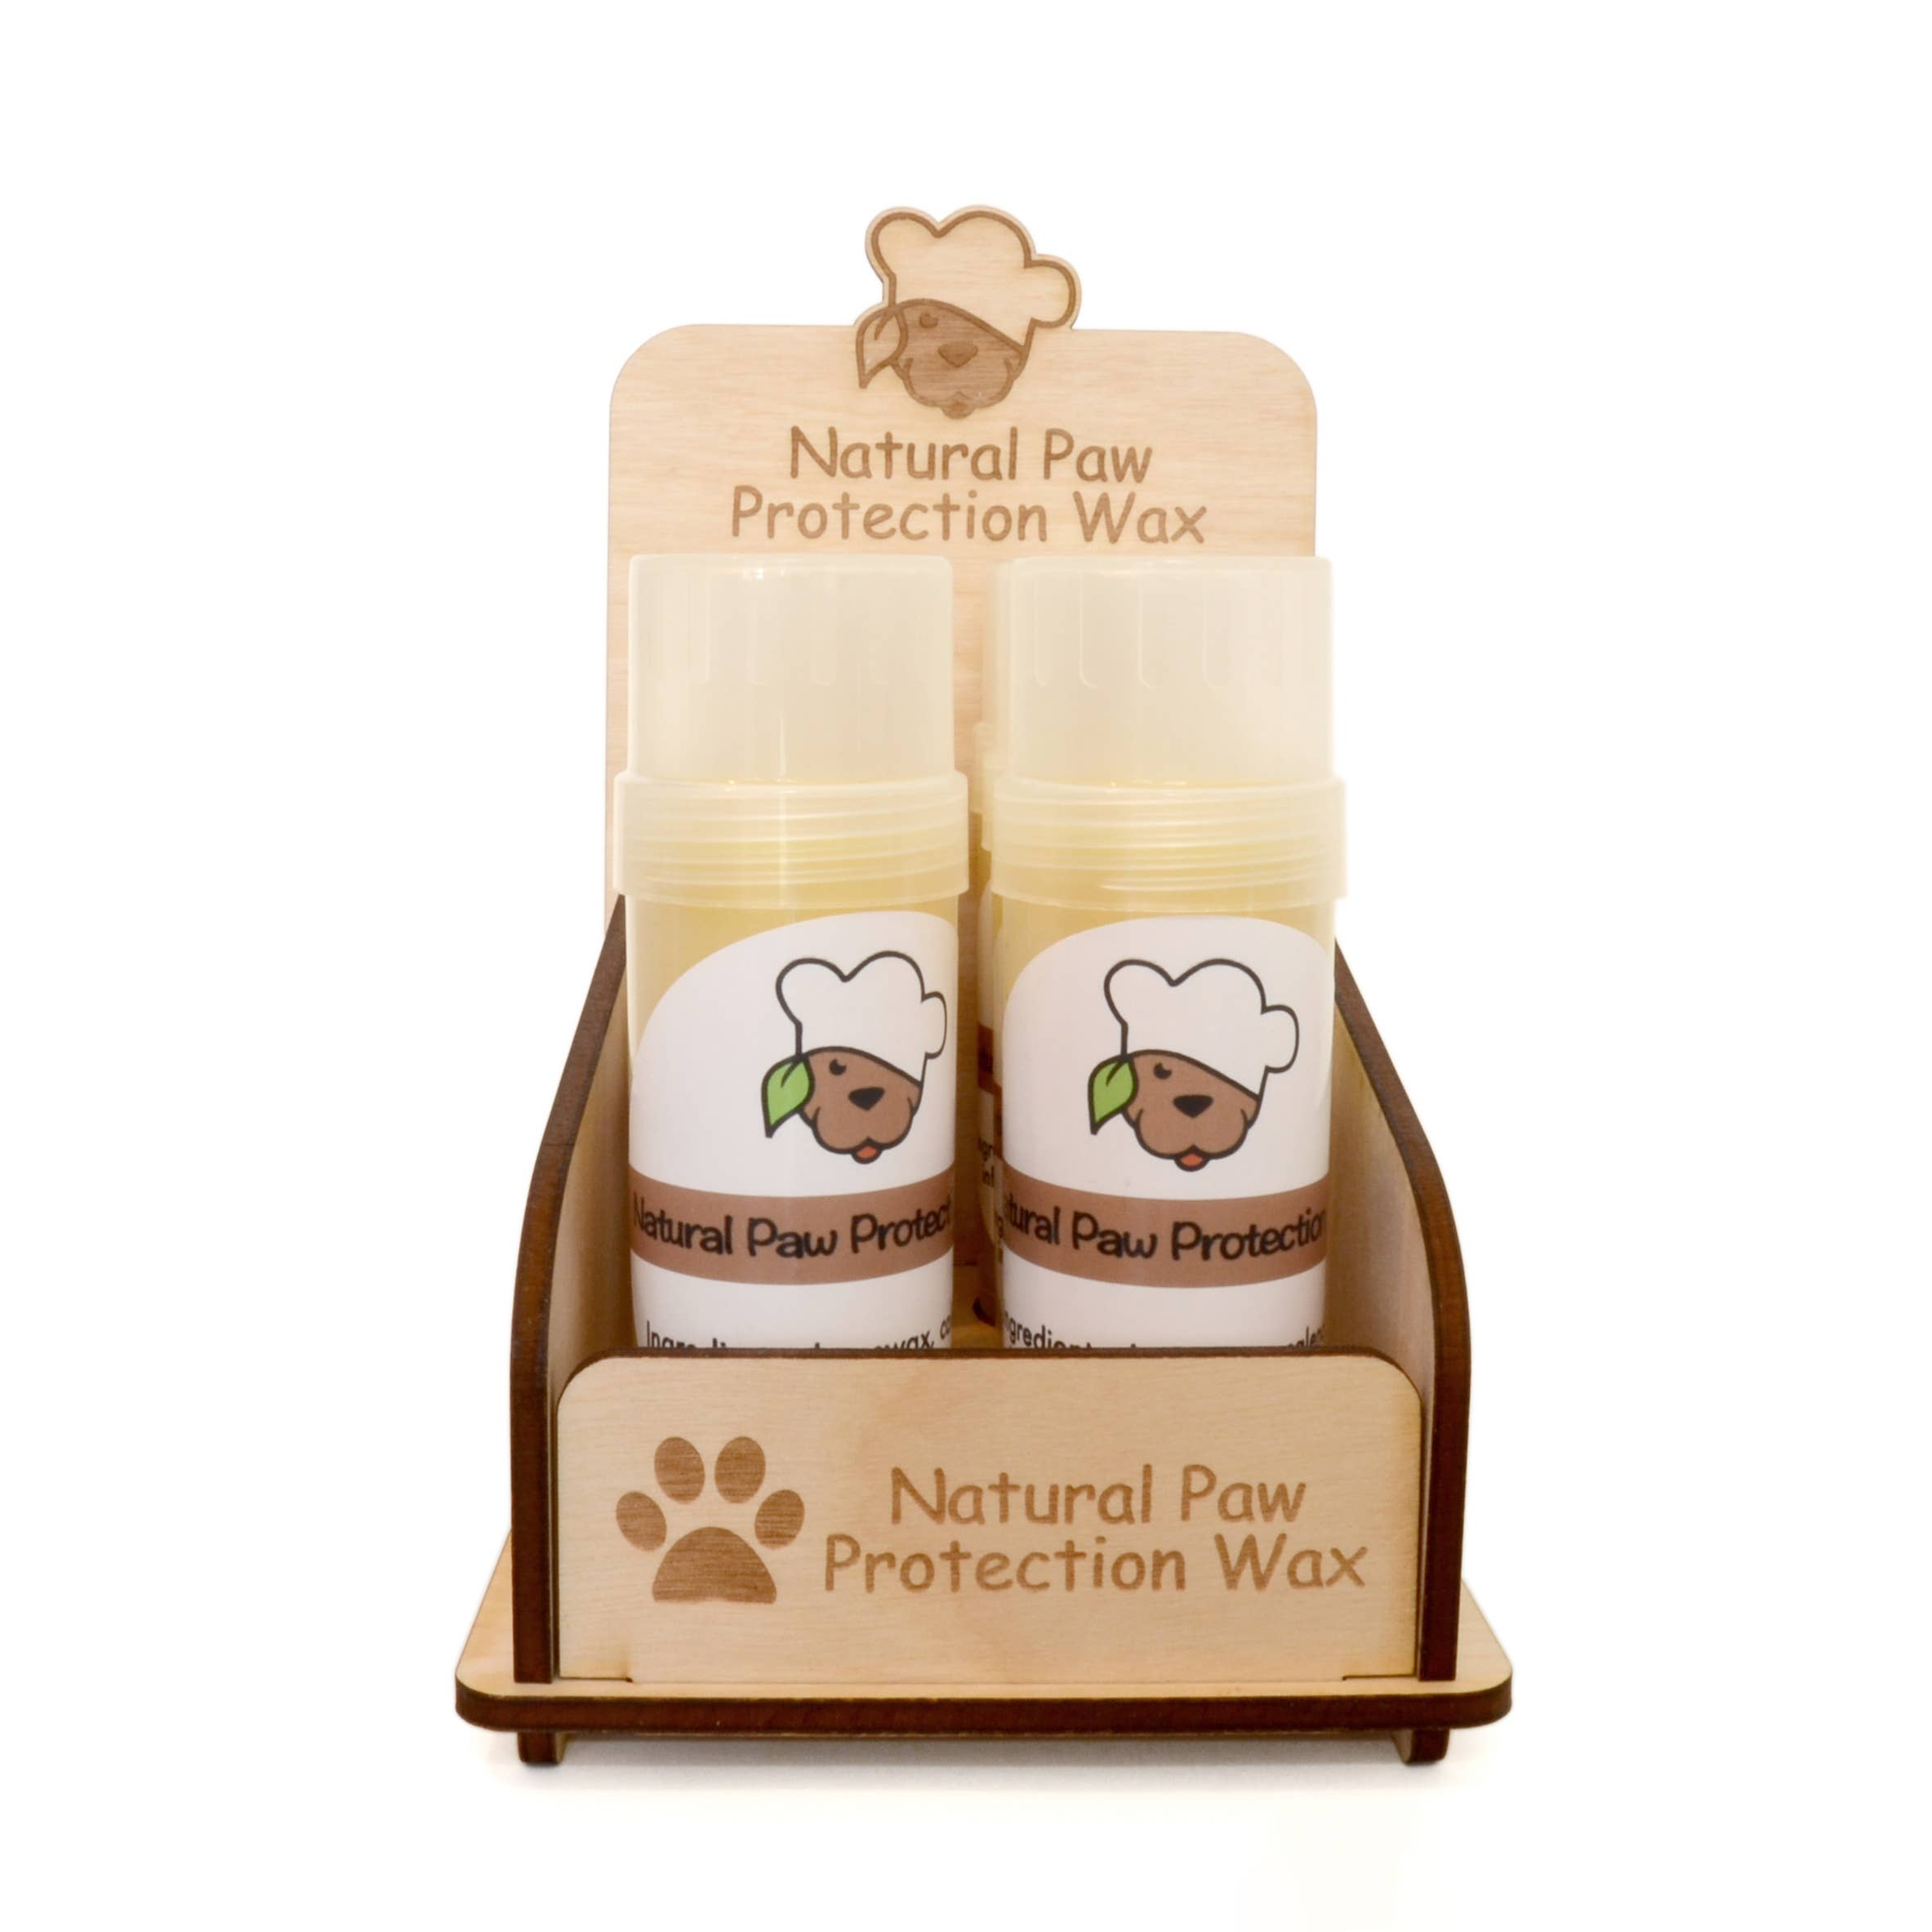 Engraved Wooden Paw Wax Tube Display | Trada Marketplace